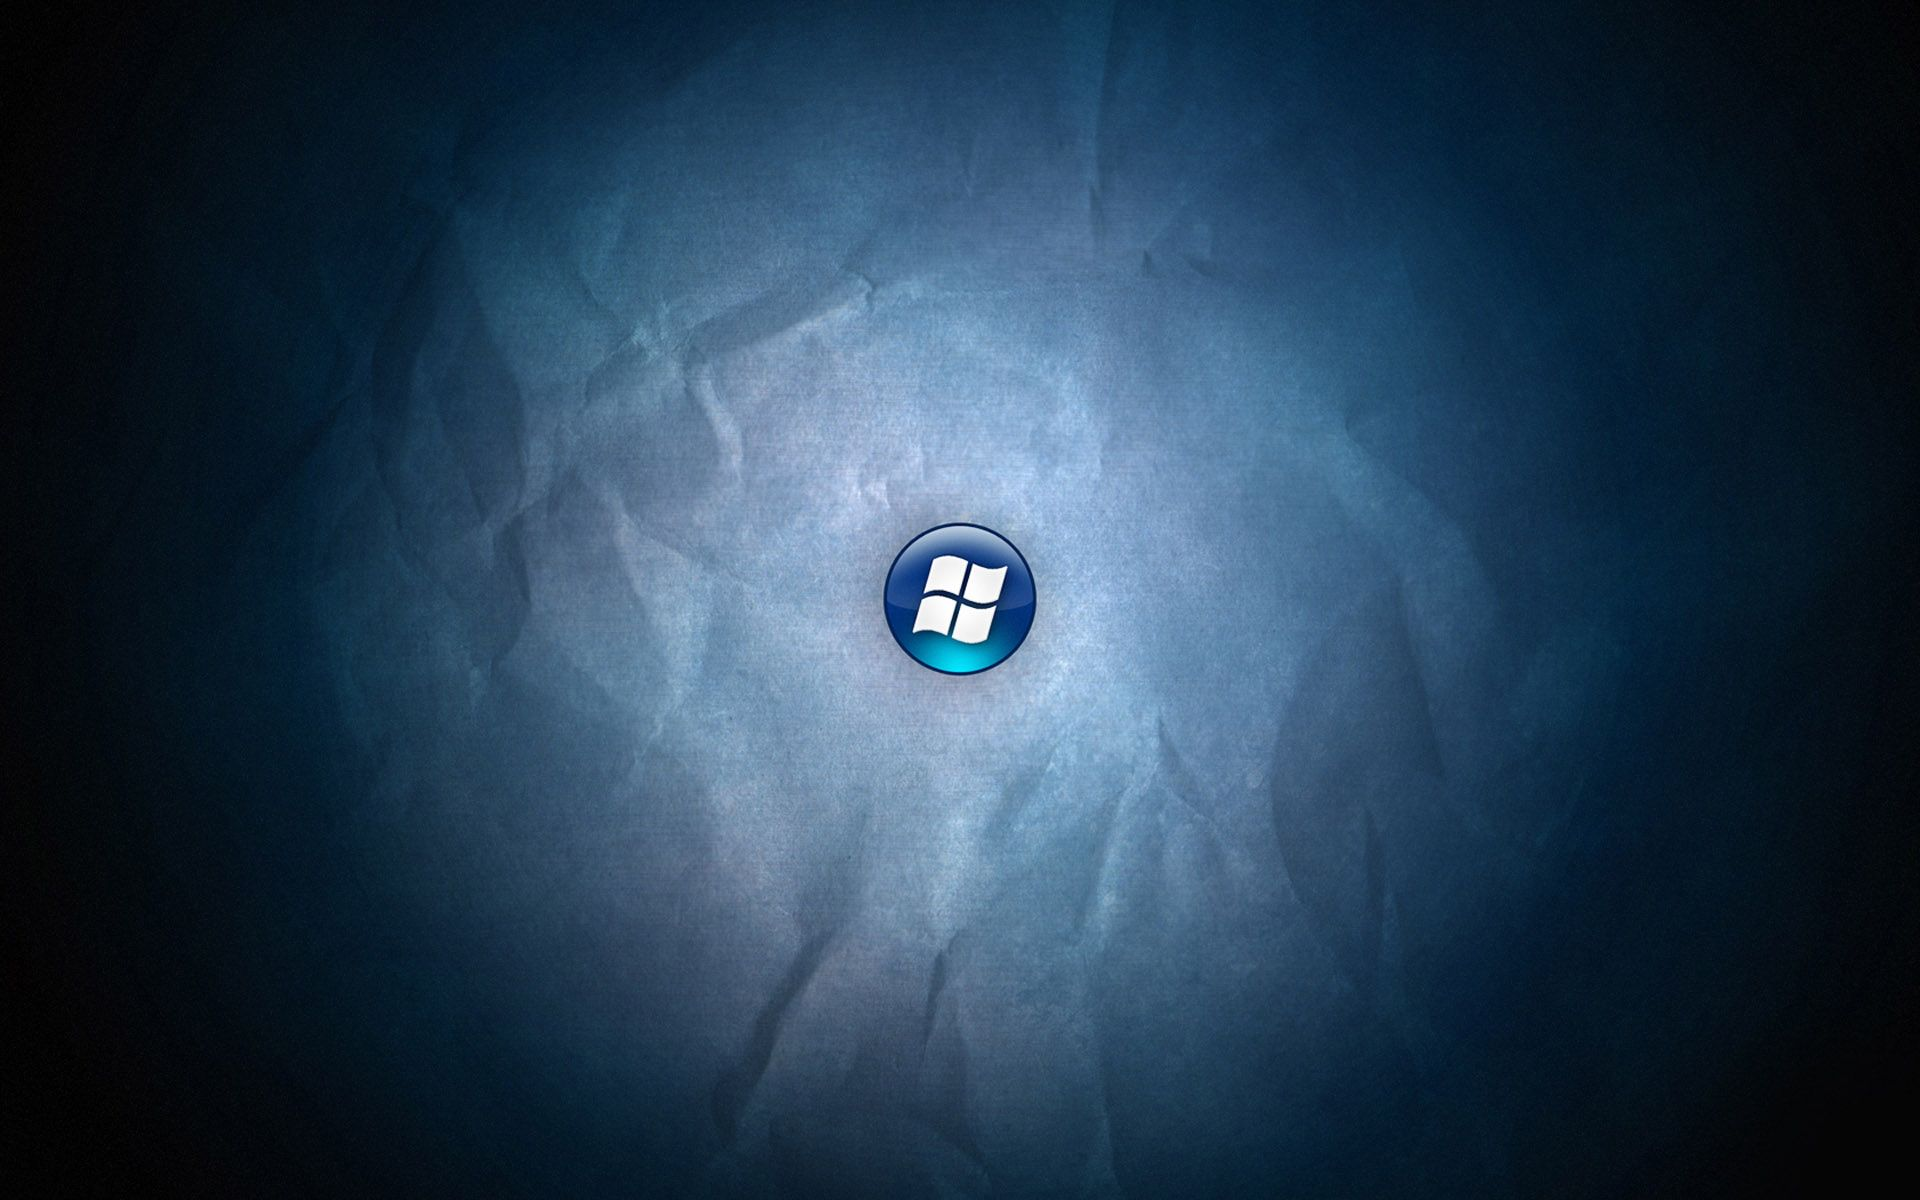 windows 7 wallpapers 29 - [1920 x 1200]